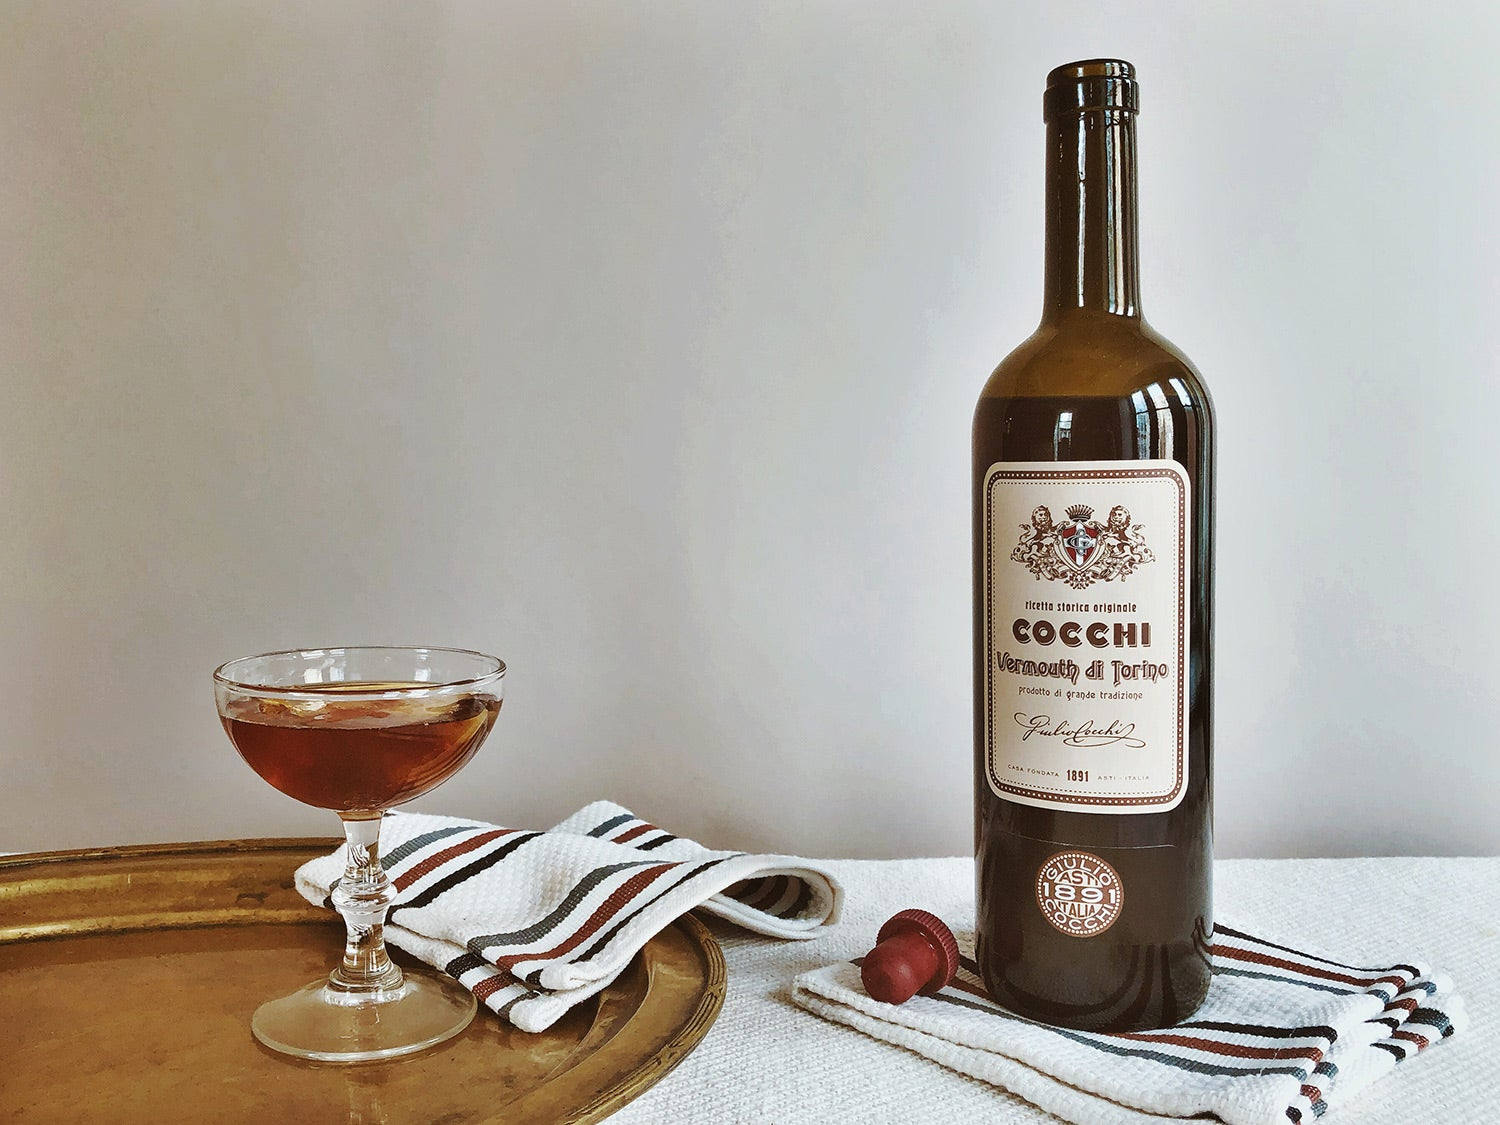 Cocchi Storico Vermouth di Torino on table with towels